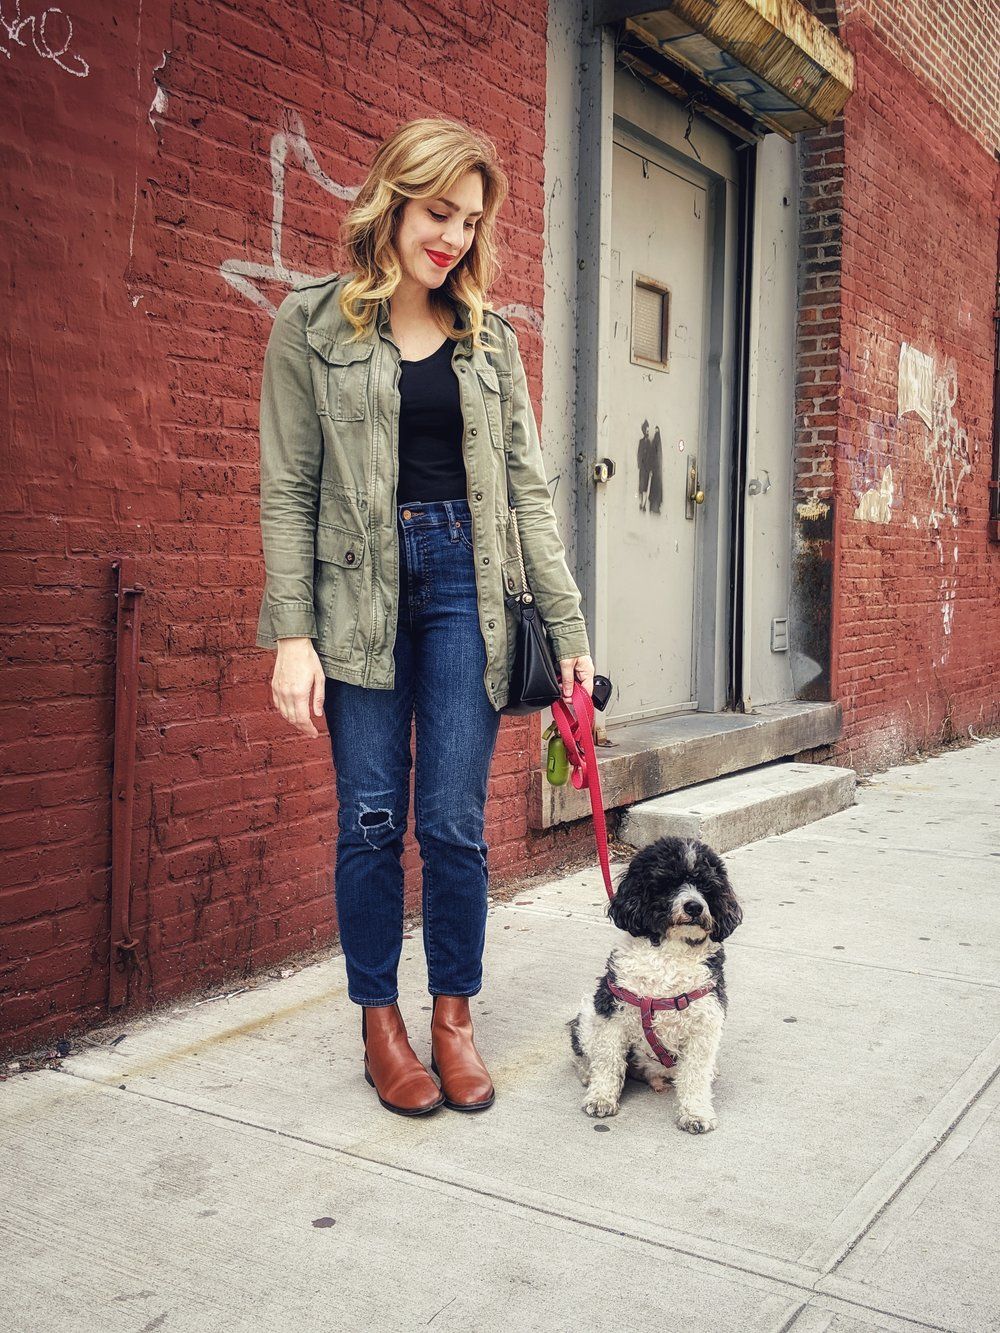 merona jacket jcrew jeans hm tee asos boots hm purse dog 3.jpeg